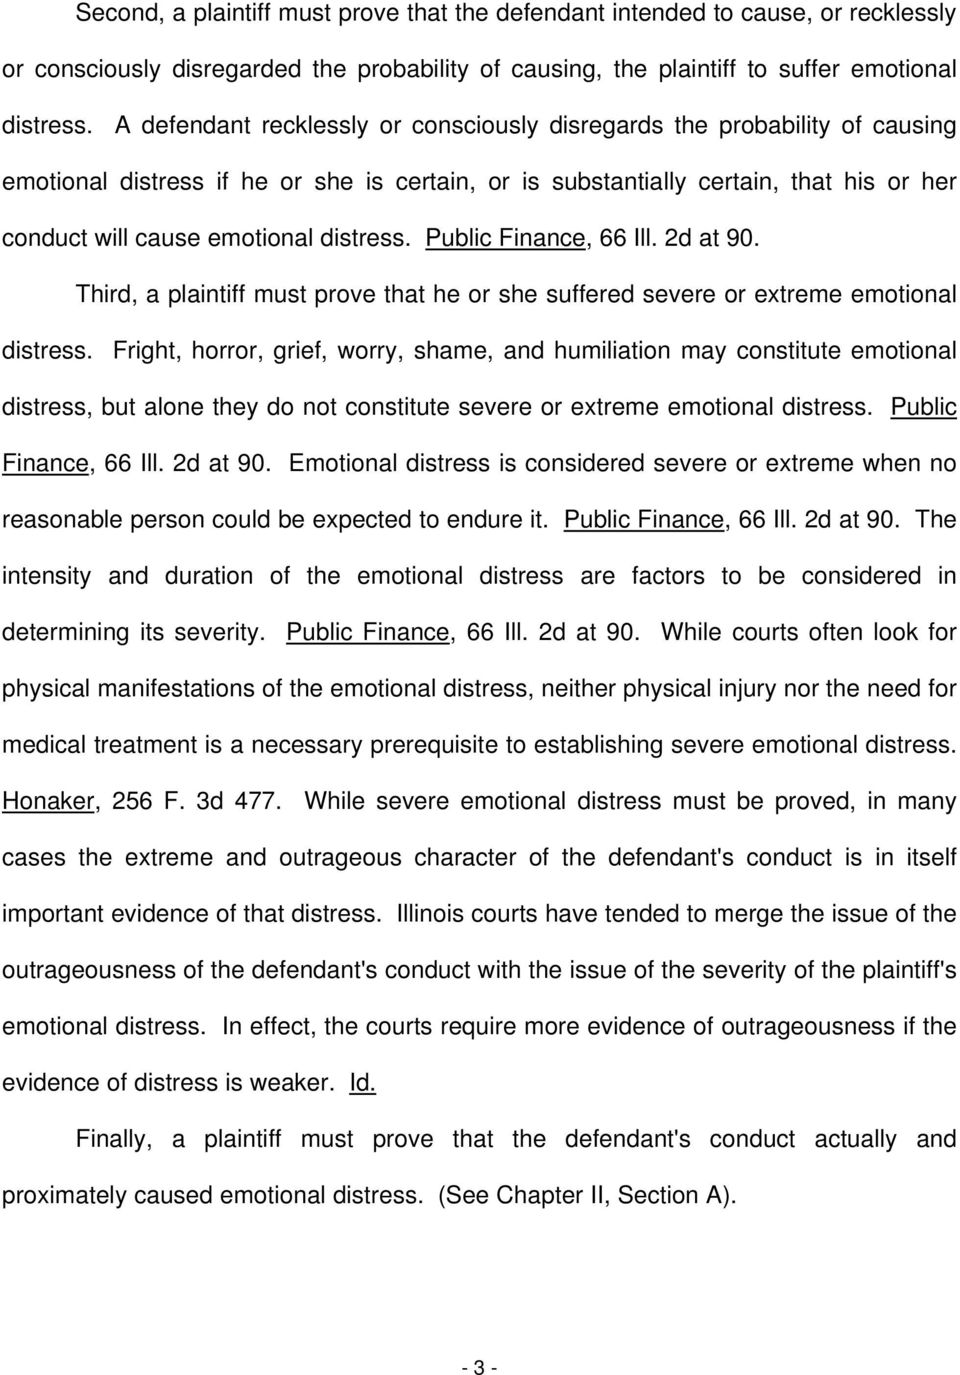 distress. Public Finance, 66 Ill. 2d at 90. Third, a plaintiff must prove that he or she suffered severe or extreme emotional distress.